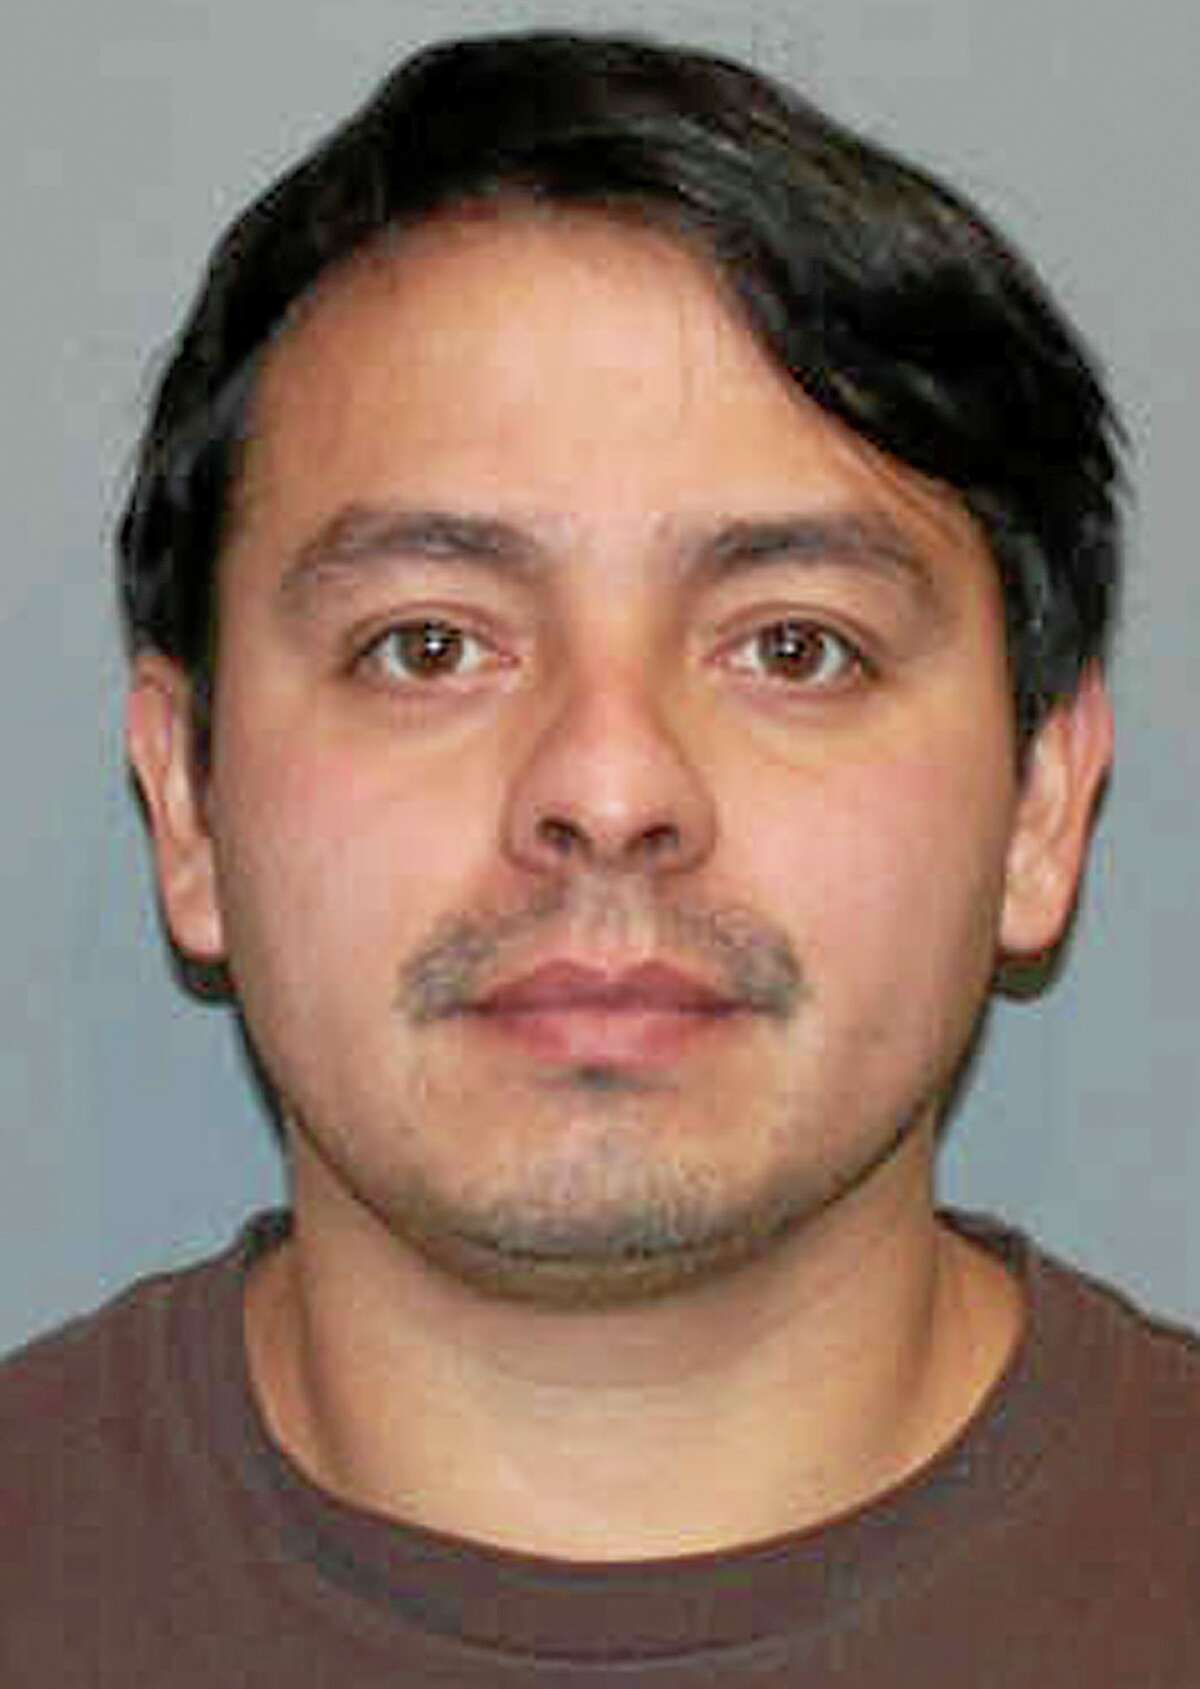 This booking photo released Friday, Jan. 10, 2014 by the Norwalk Police Department shows Alfredo Bahena-Benitez, a pool company worker arrested on charges that he drained a swimming pool in freezing temperatures onto Flax Hill Road in Norwalk, Conn., causing several car crashes. (AP Photo/Norwalk Police Department)